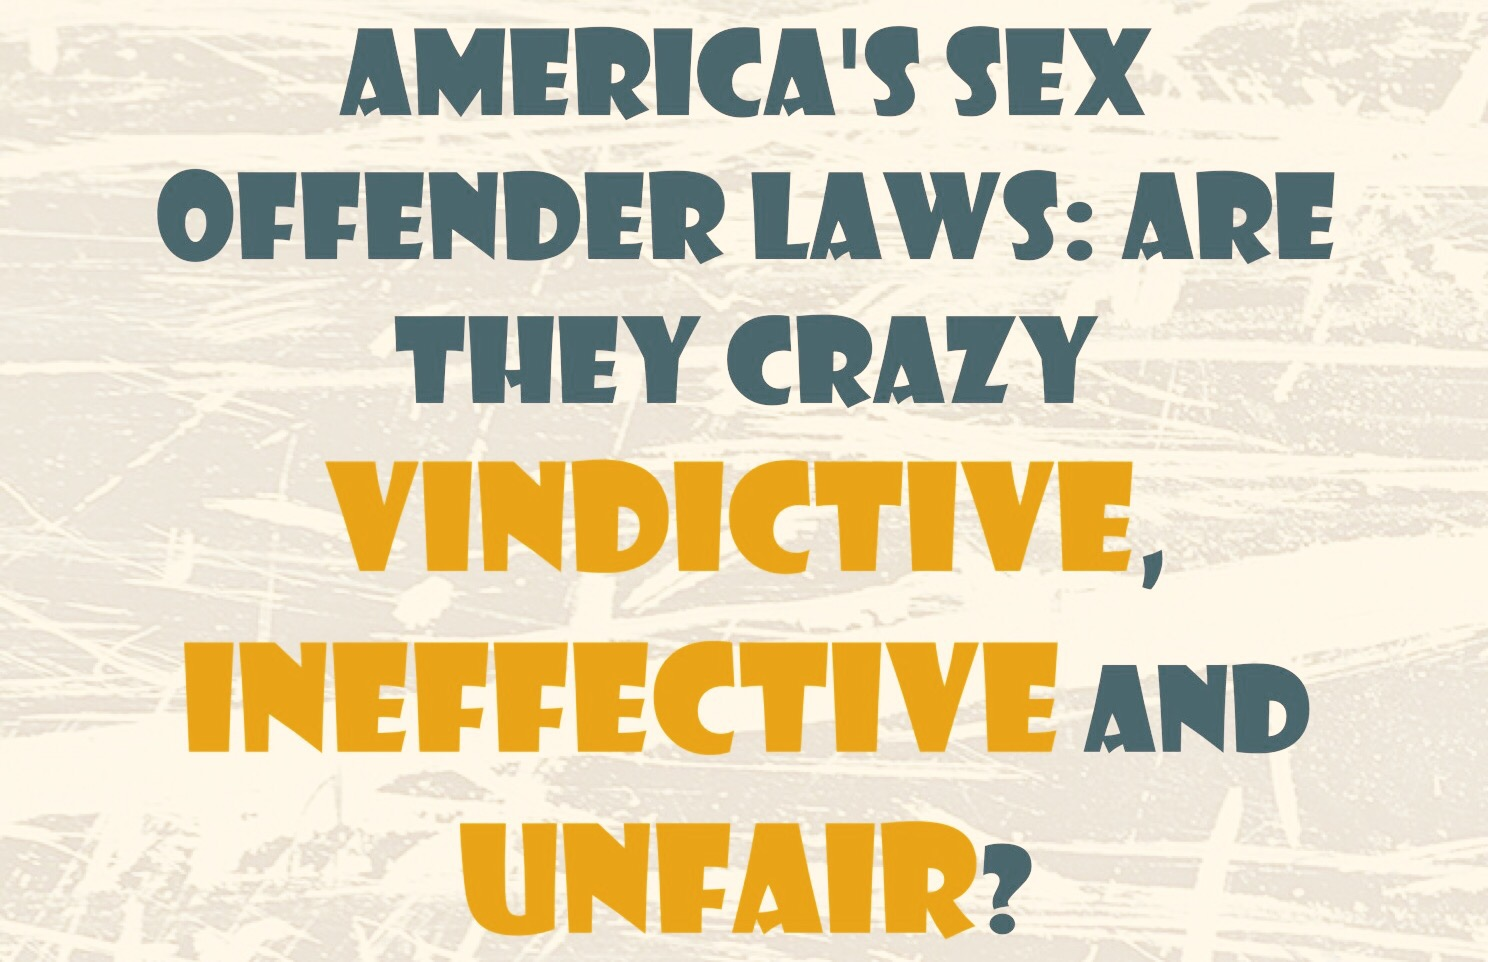 This week I changed my mind about America's sex offender laws. Sure,  they're popular and were passed by Congress and state legislatures in  response terrible ...